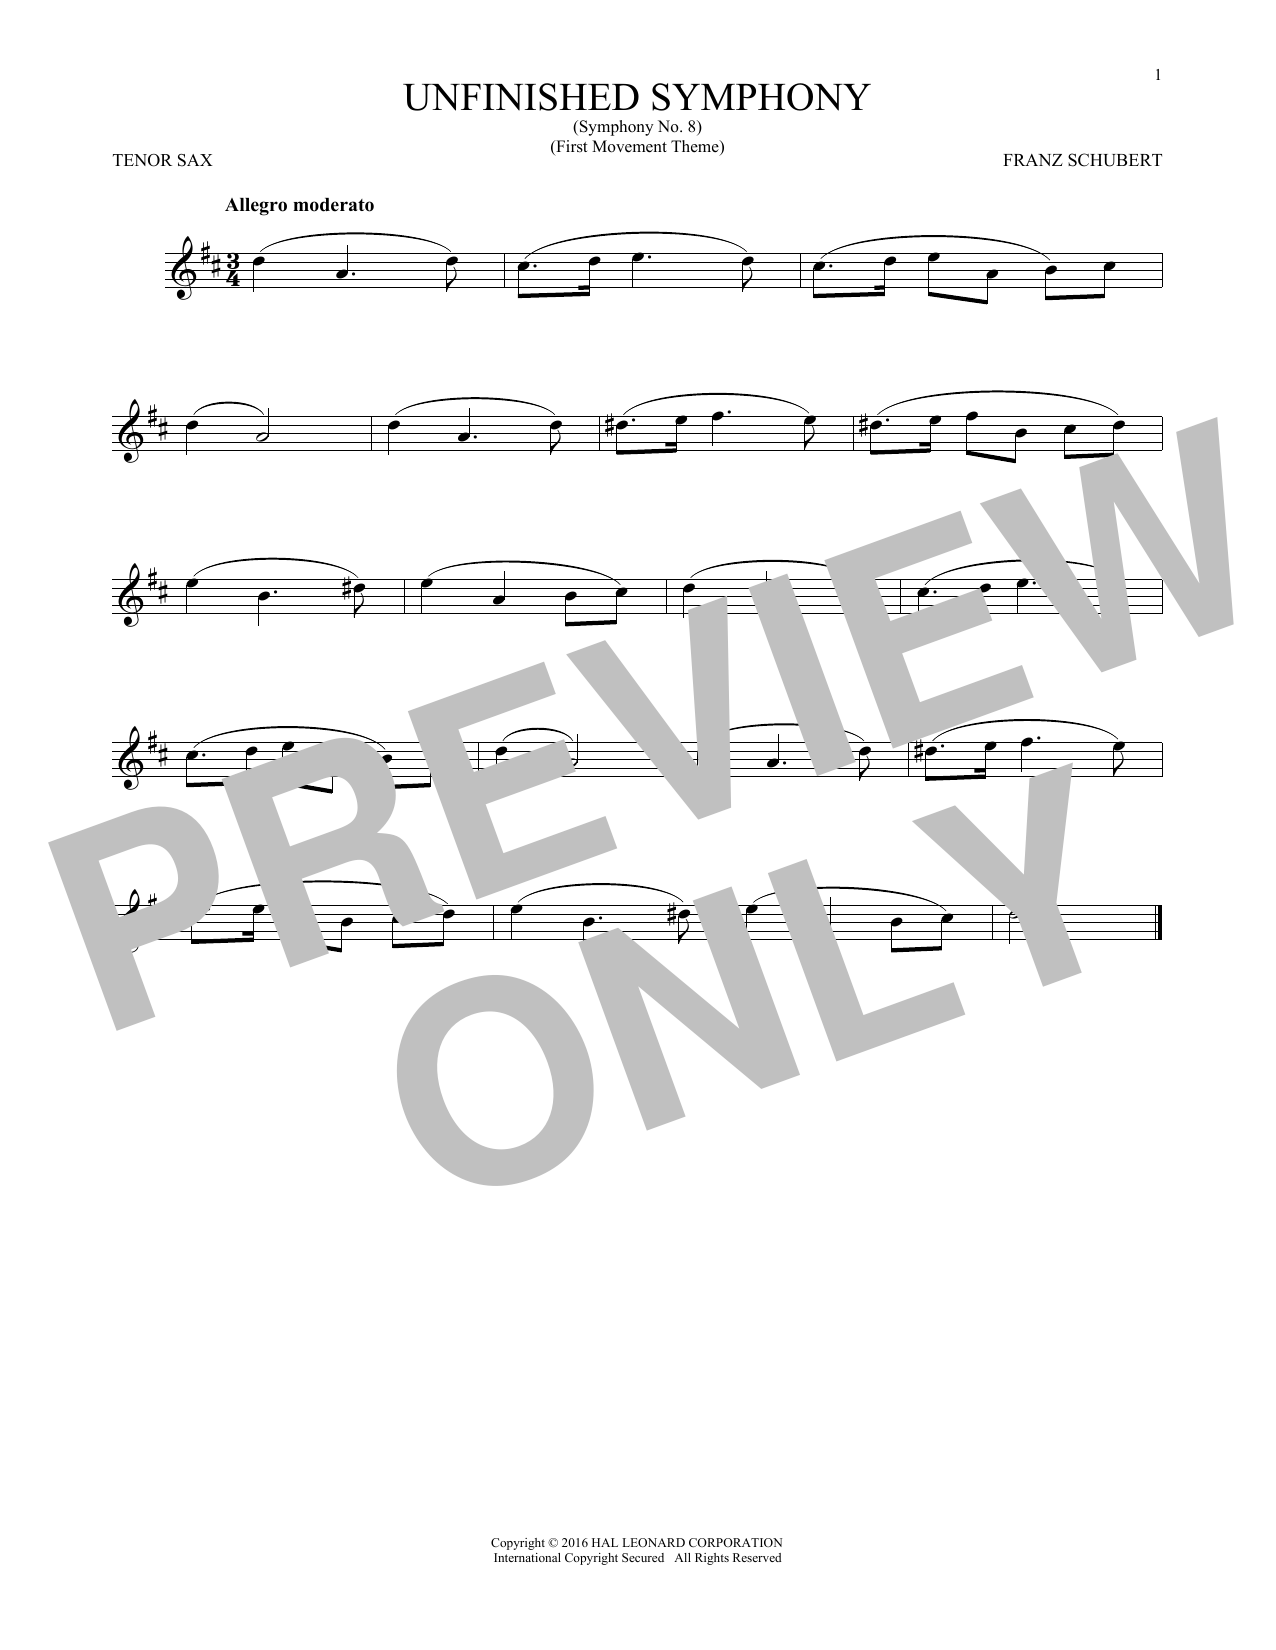 The Unfinished Symphony (Theme) (Tenor Sax Solo)